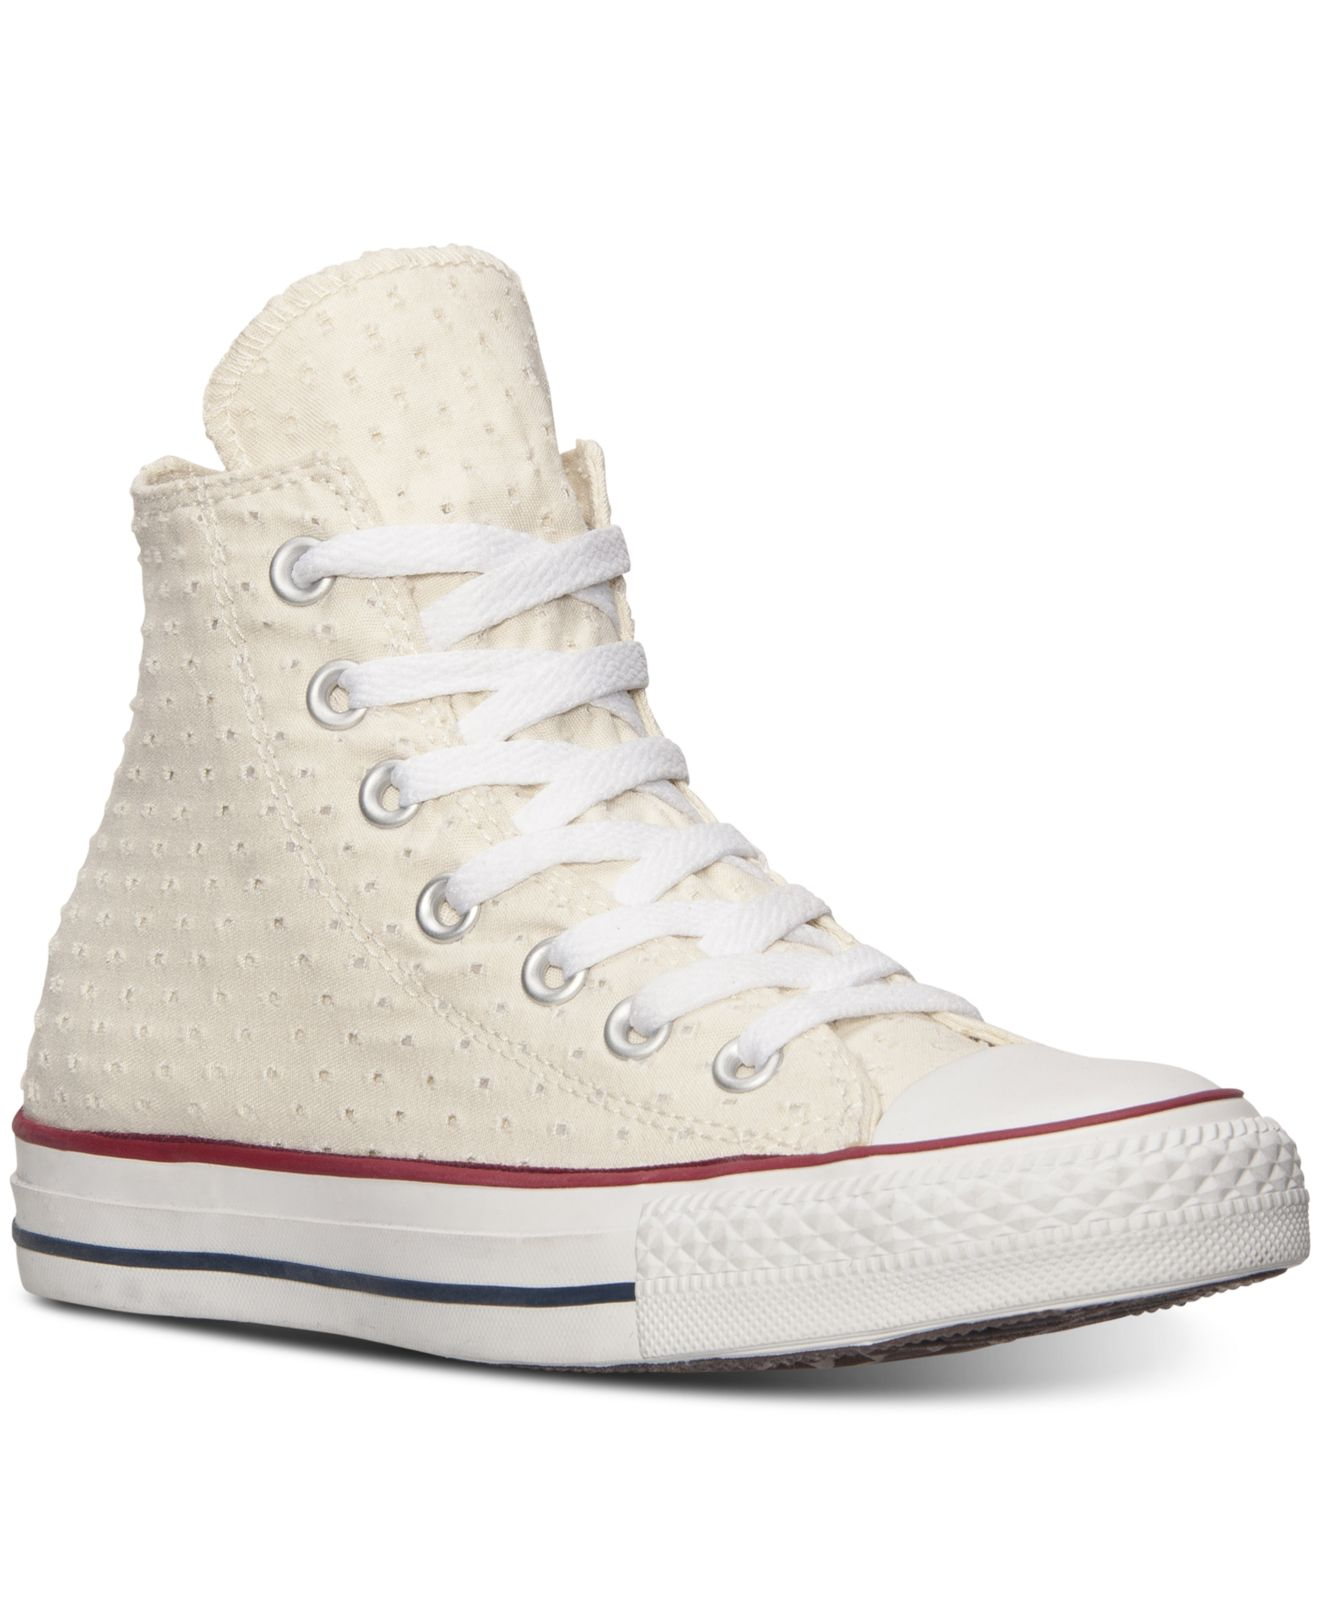 de59edce58d1 Gallery. Previously sold at  Macy s · Women s Converse Chuck Taylor ...